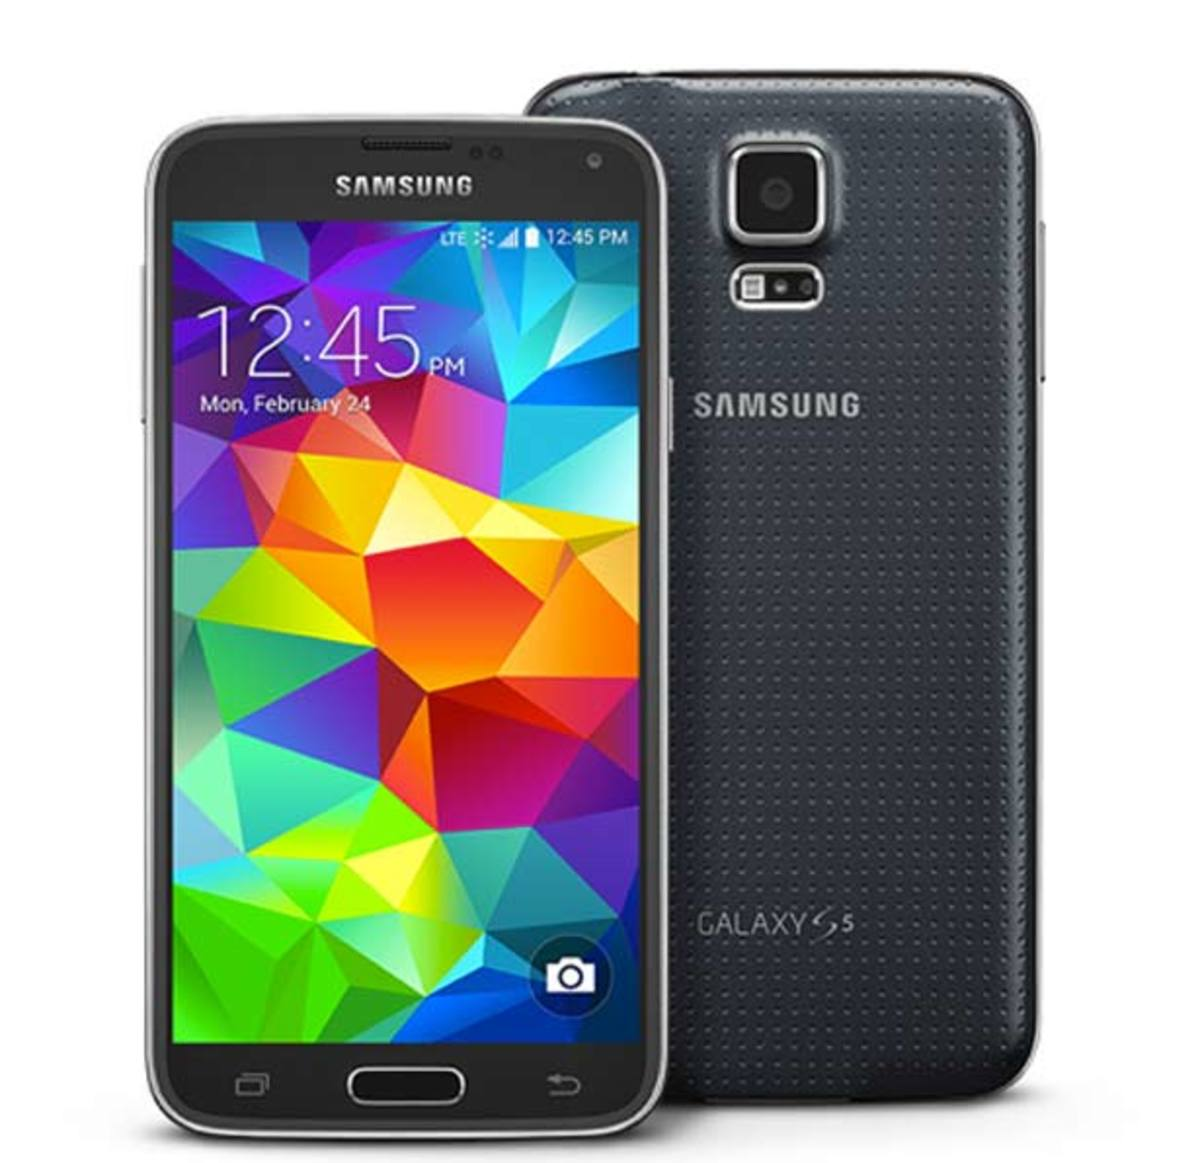 Samsung's Galaxy S5 Puts Fitness First In Its List Of New Features